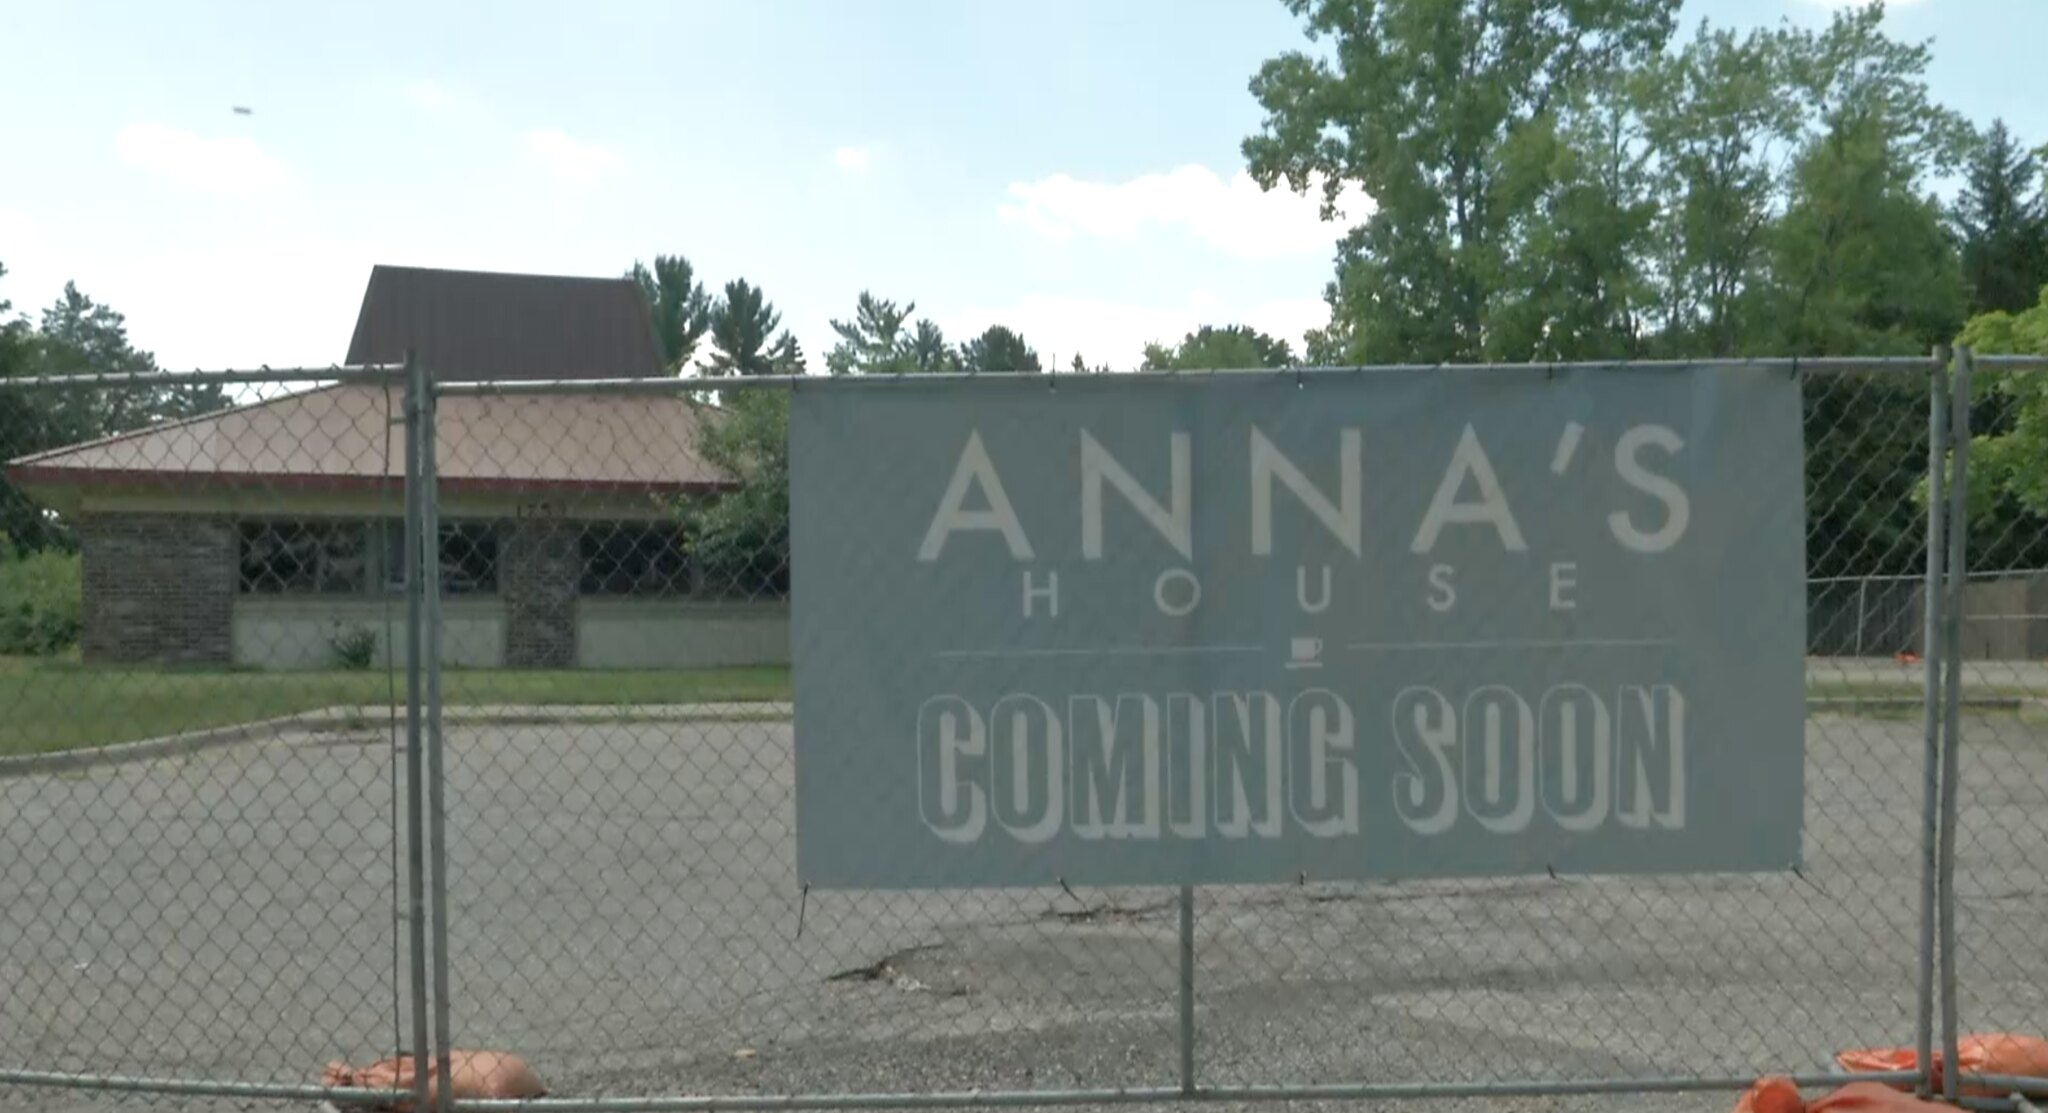 Anna's House to Open Location in Meridian Township